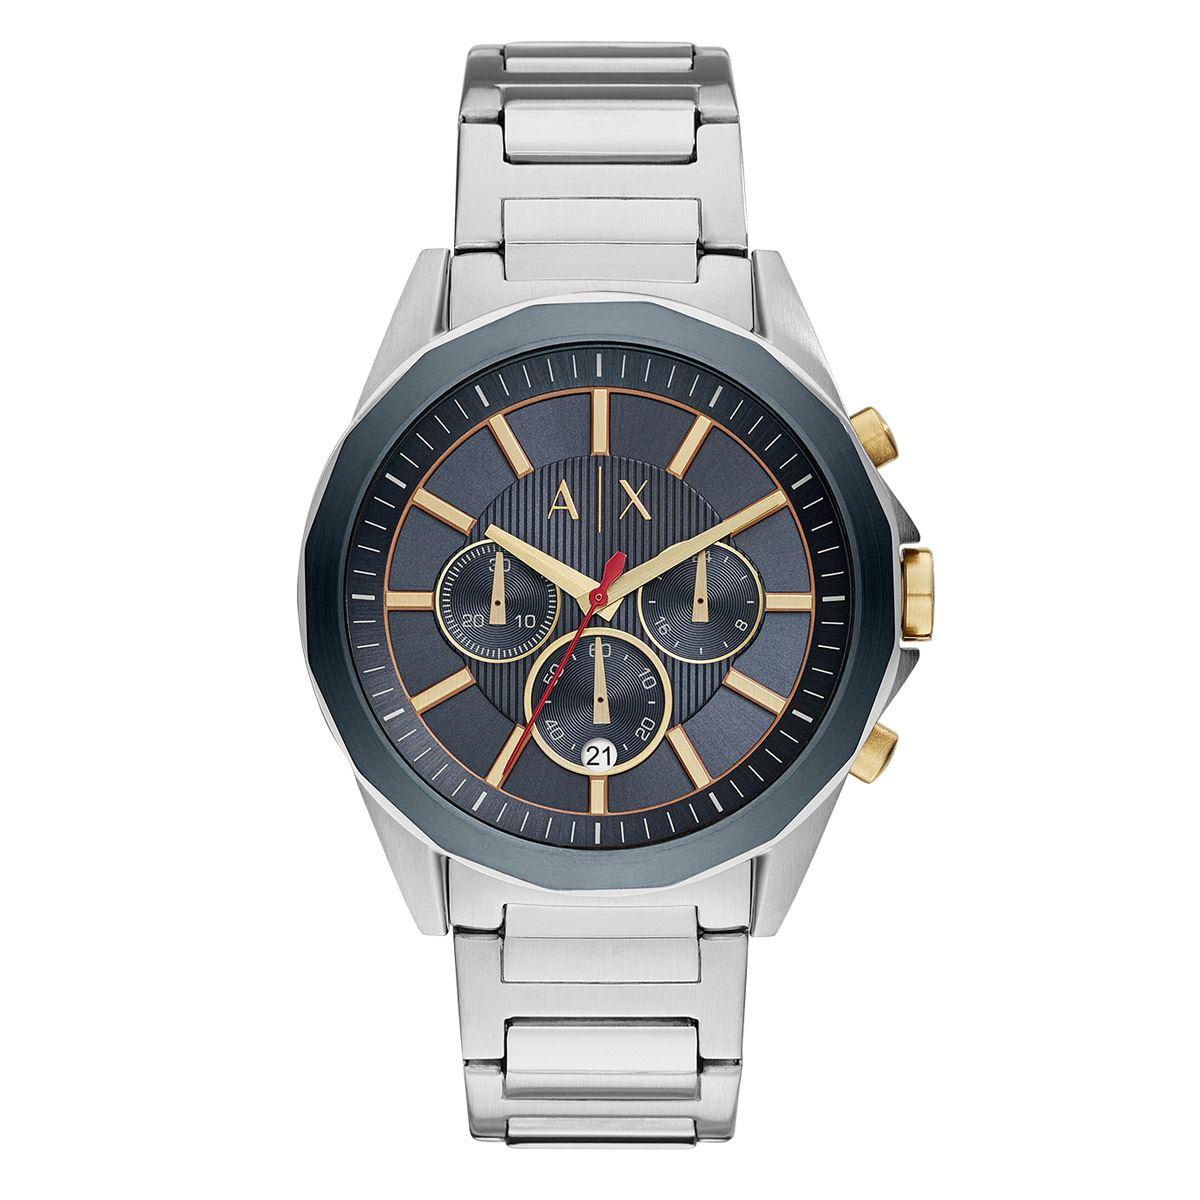 Reloj armani exchange ax2614  - Sanborns